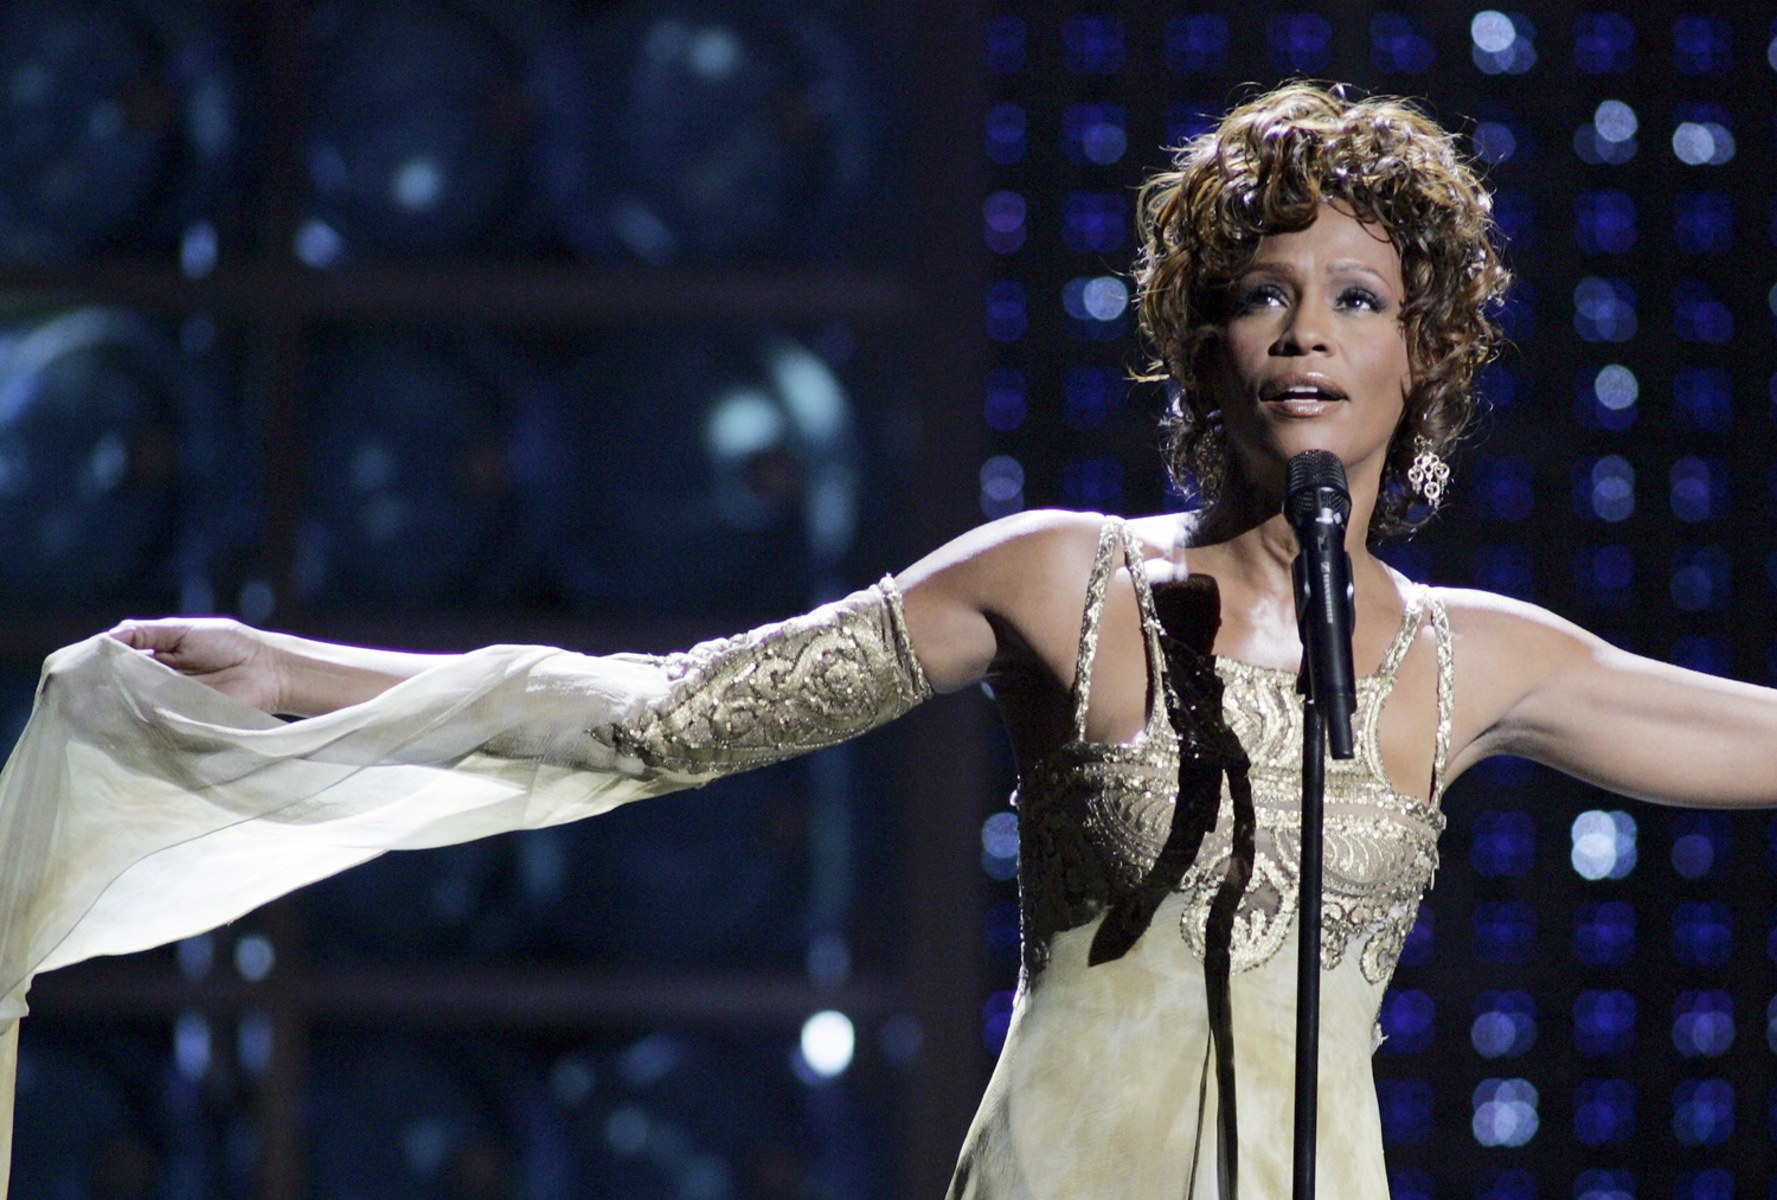 Image: File photo of Whitney Houston at the World Music Awards in Las Vegas